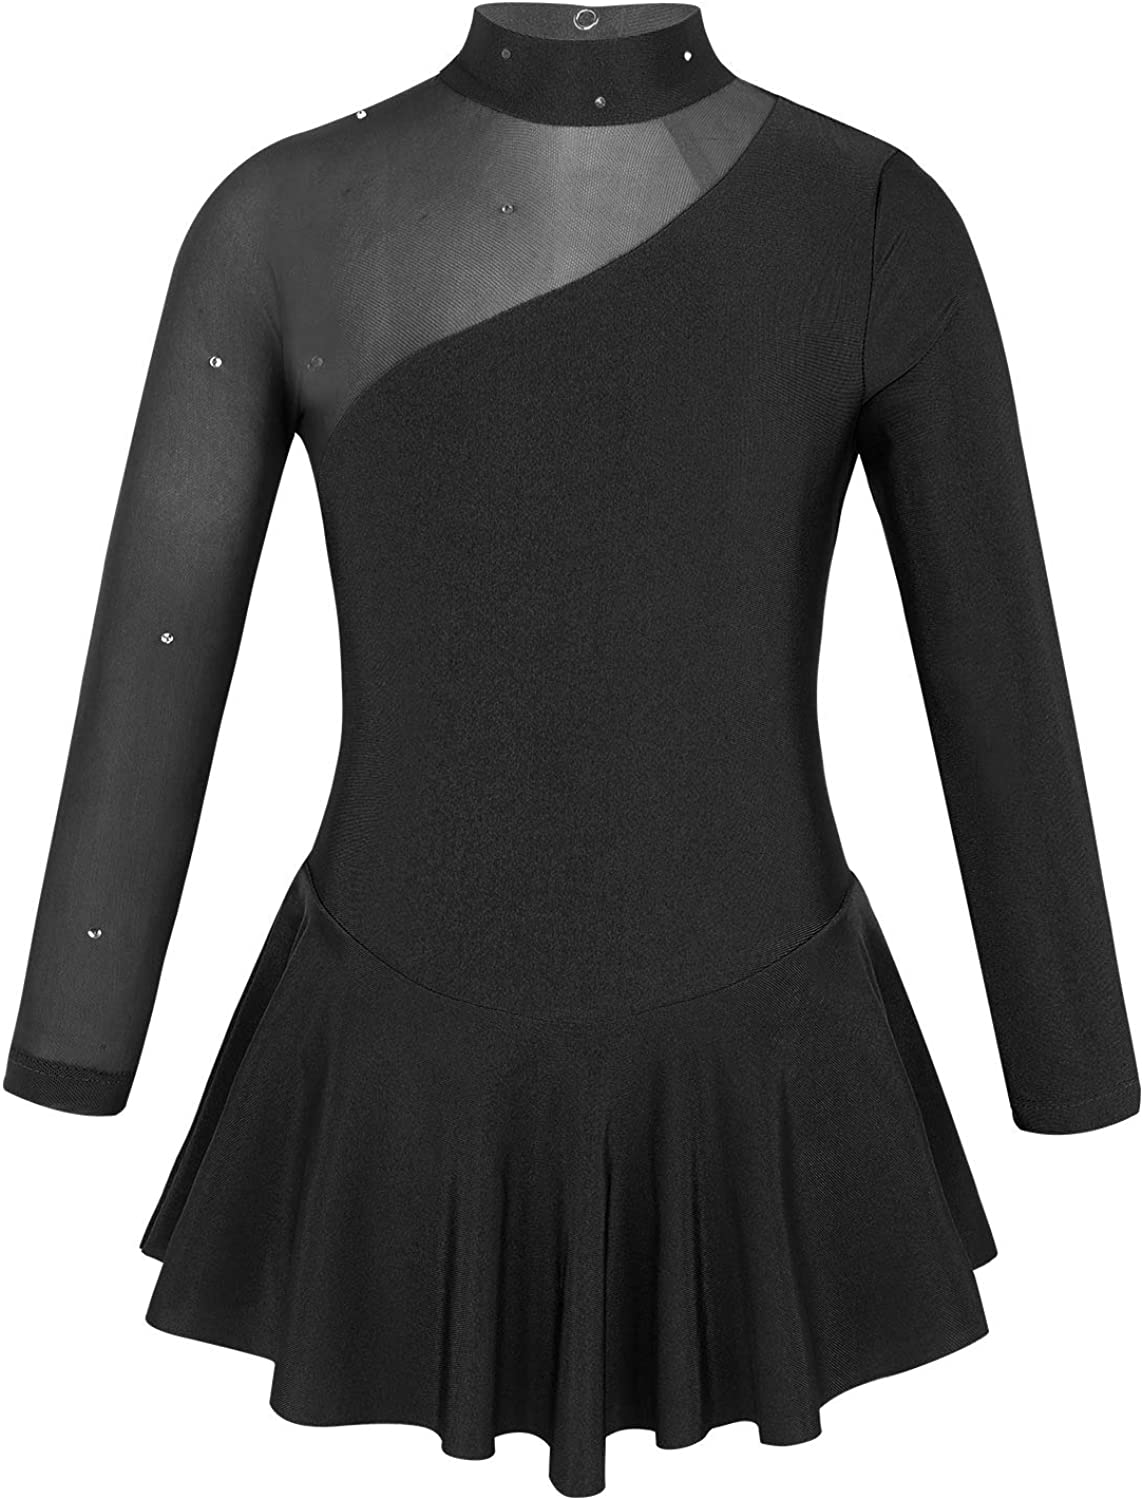 Girls Kids Long Sleeves Skating Dress Chiffon Ballet Dance Leotard Gymnastics